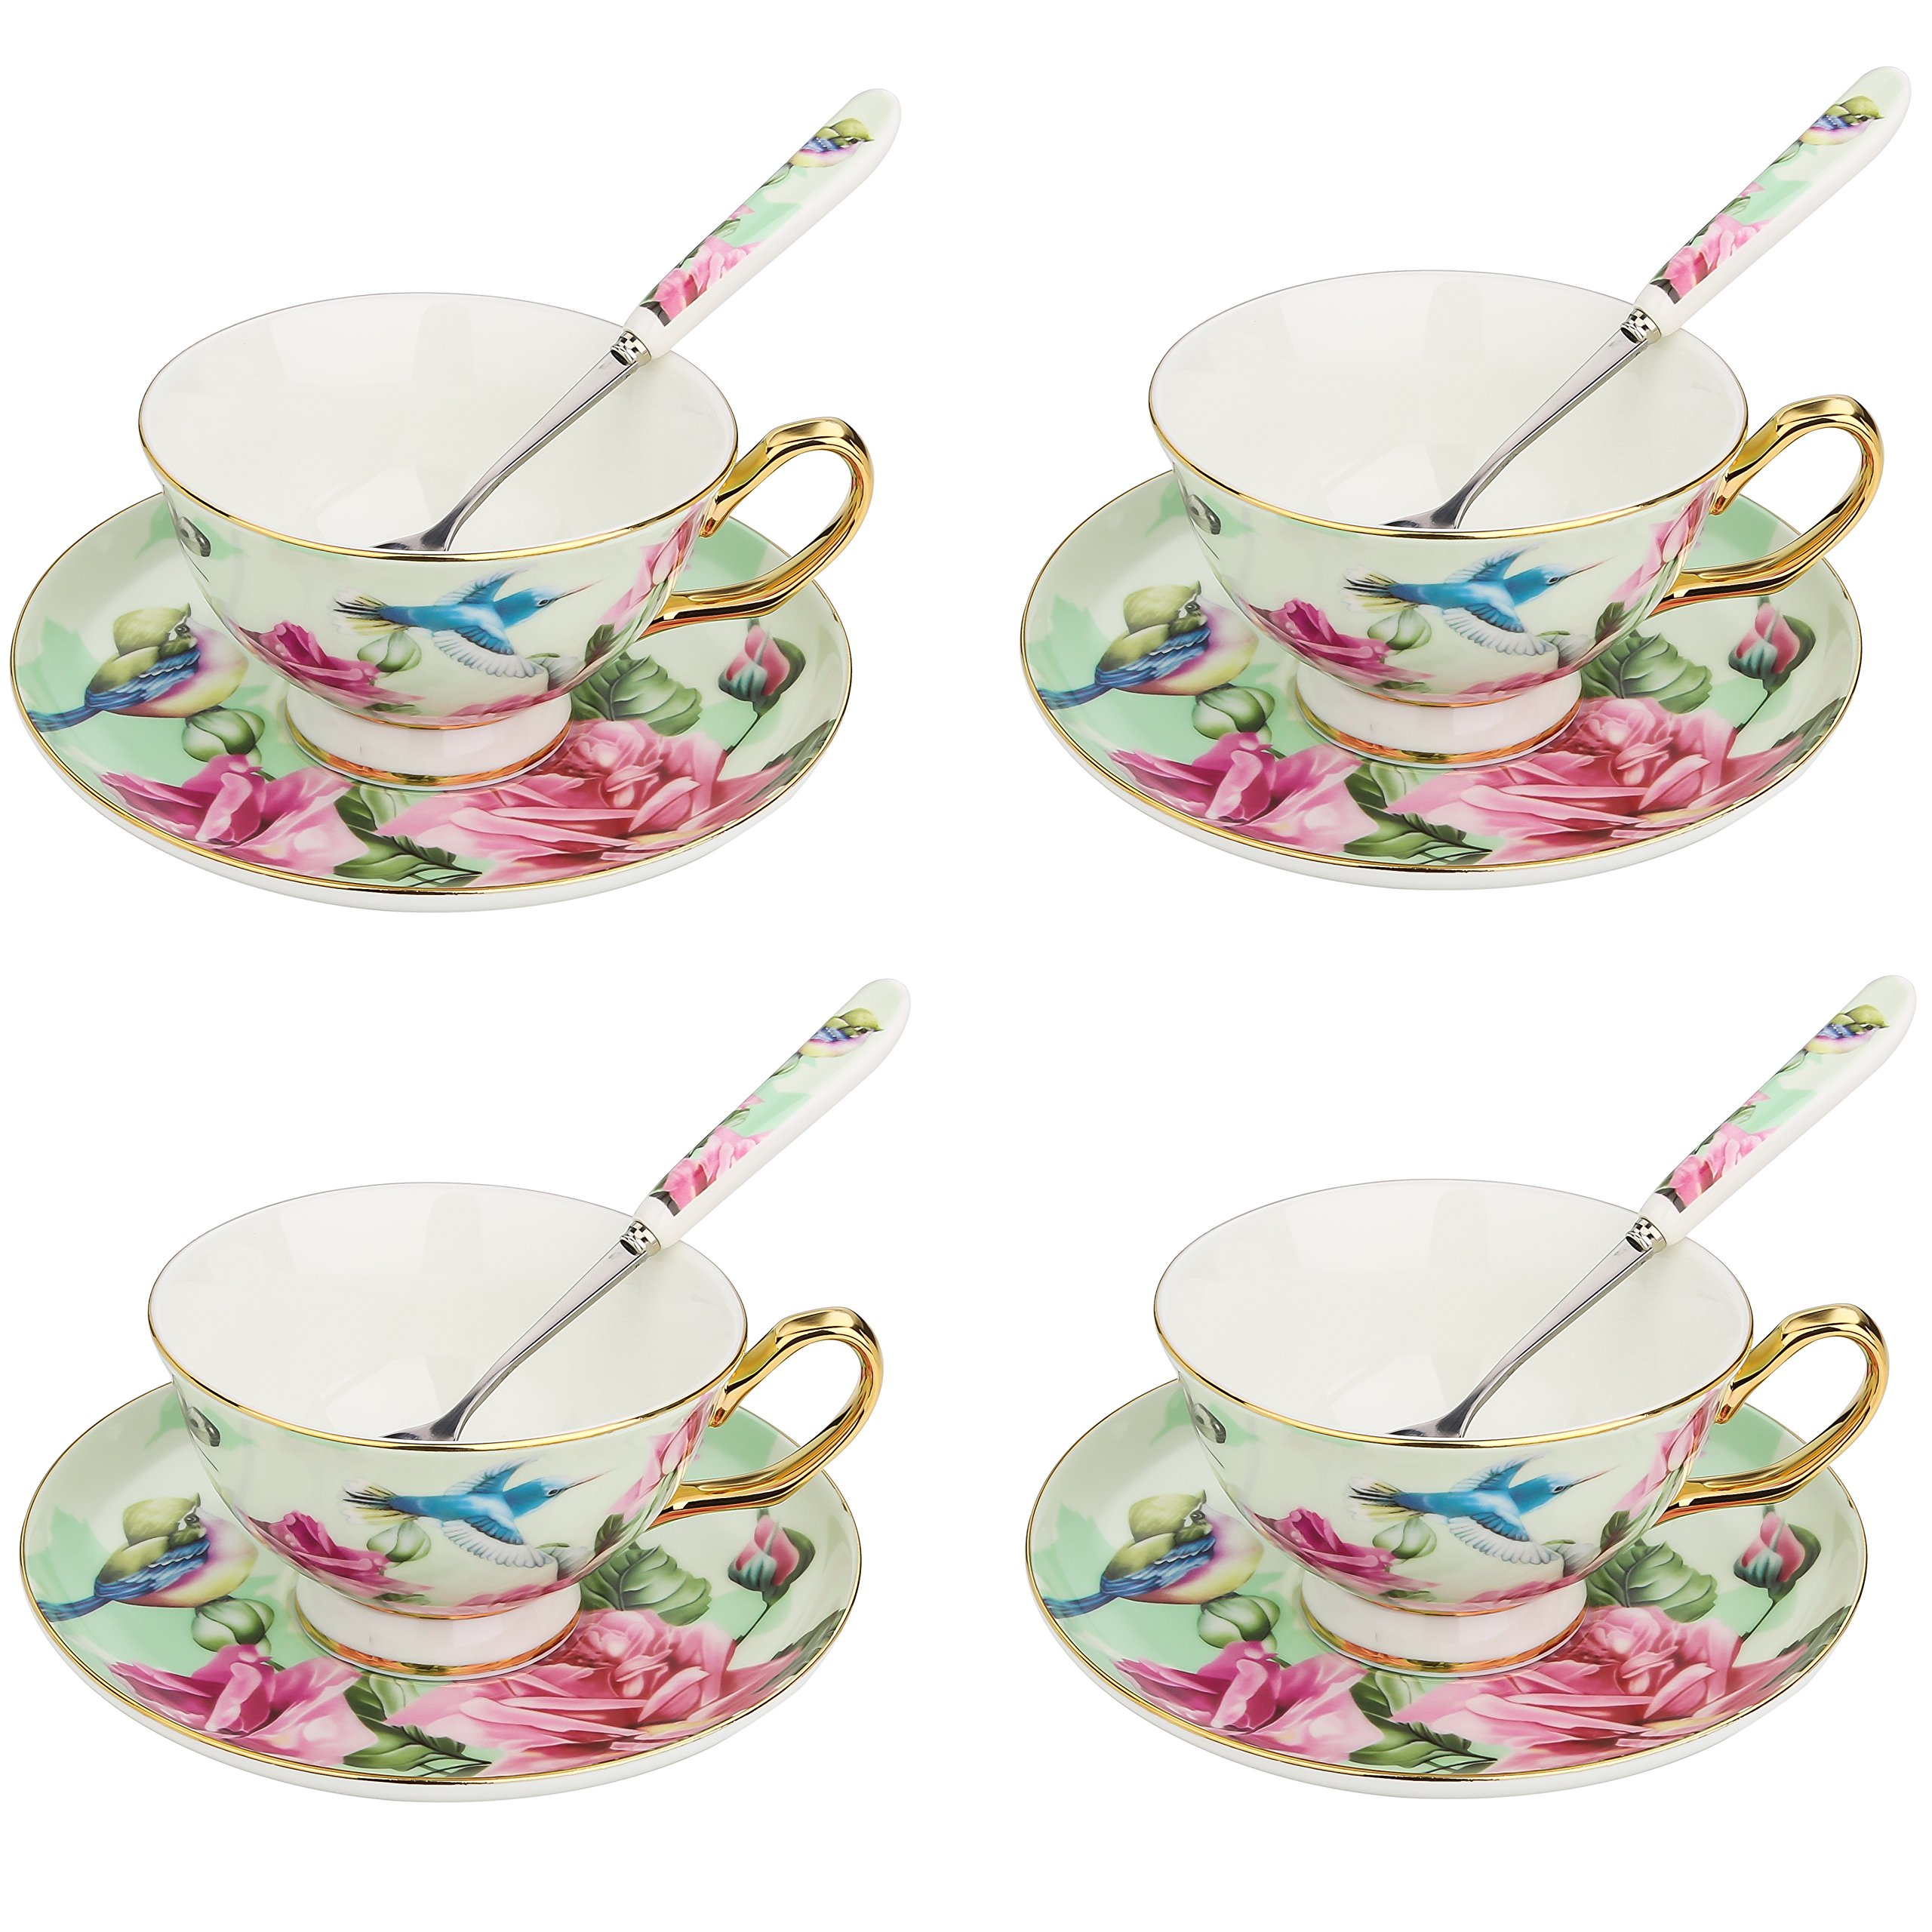 ARTVIGOR Coffee and Tea Serving Set, with Green Flower and Birds Painting, 6.8 Ounce New Bone China Cup and Saucer Sets with Spoon